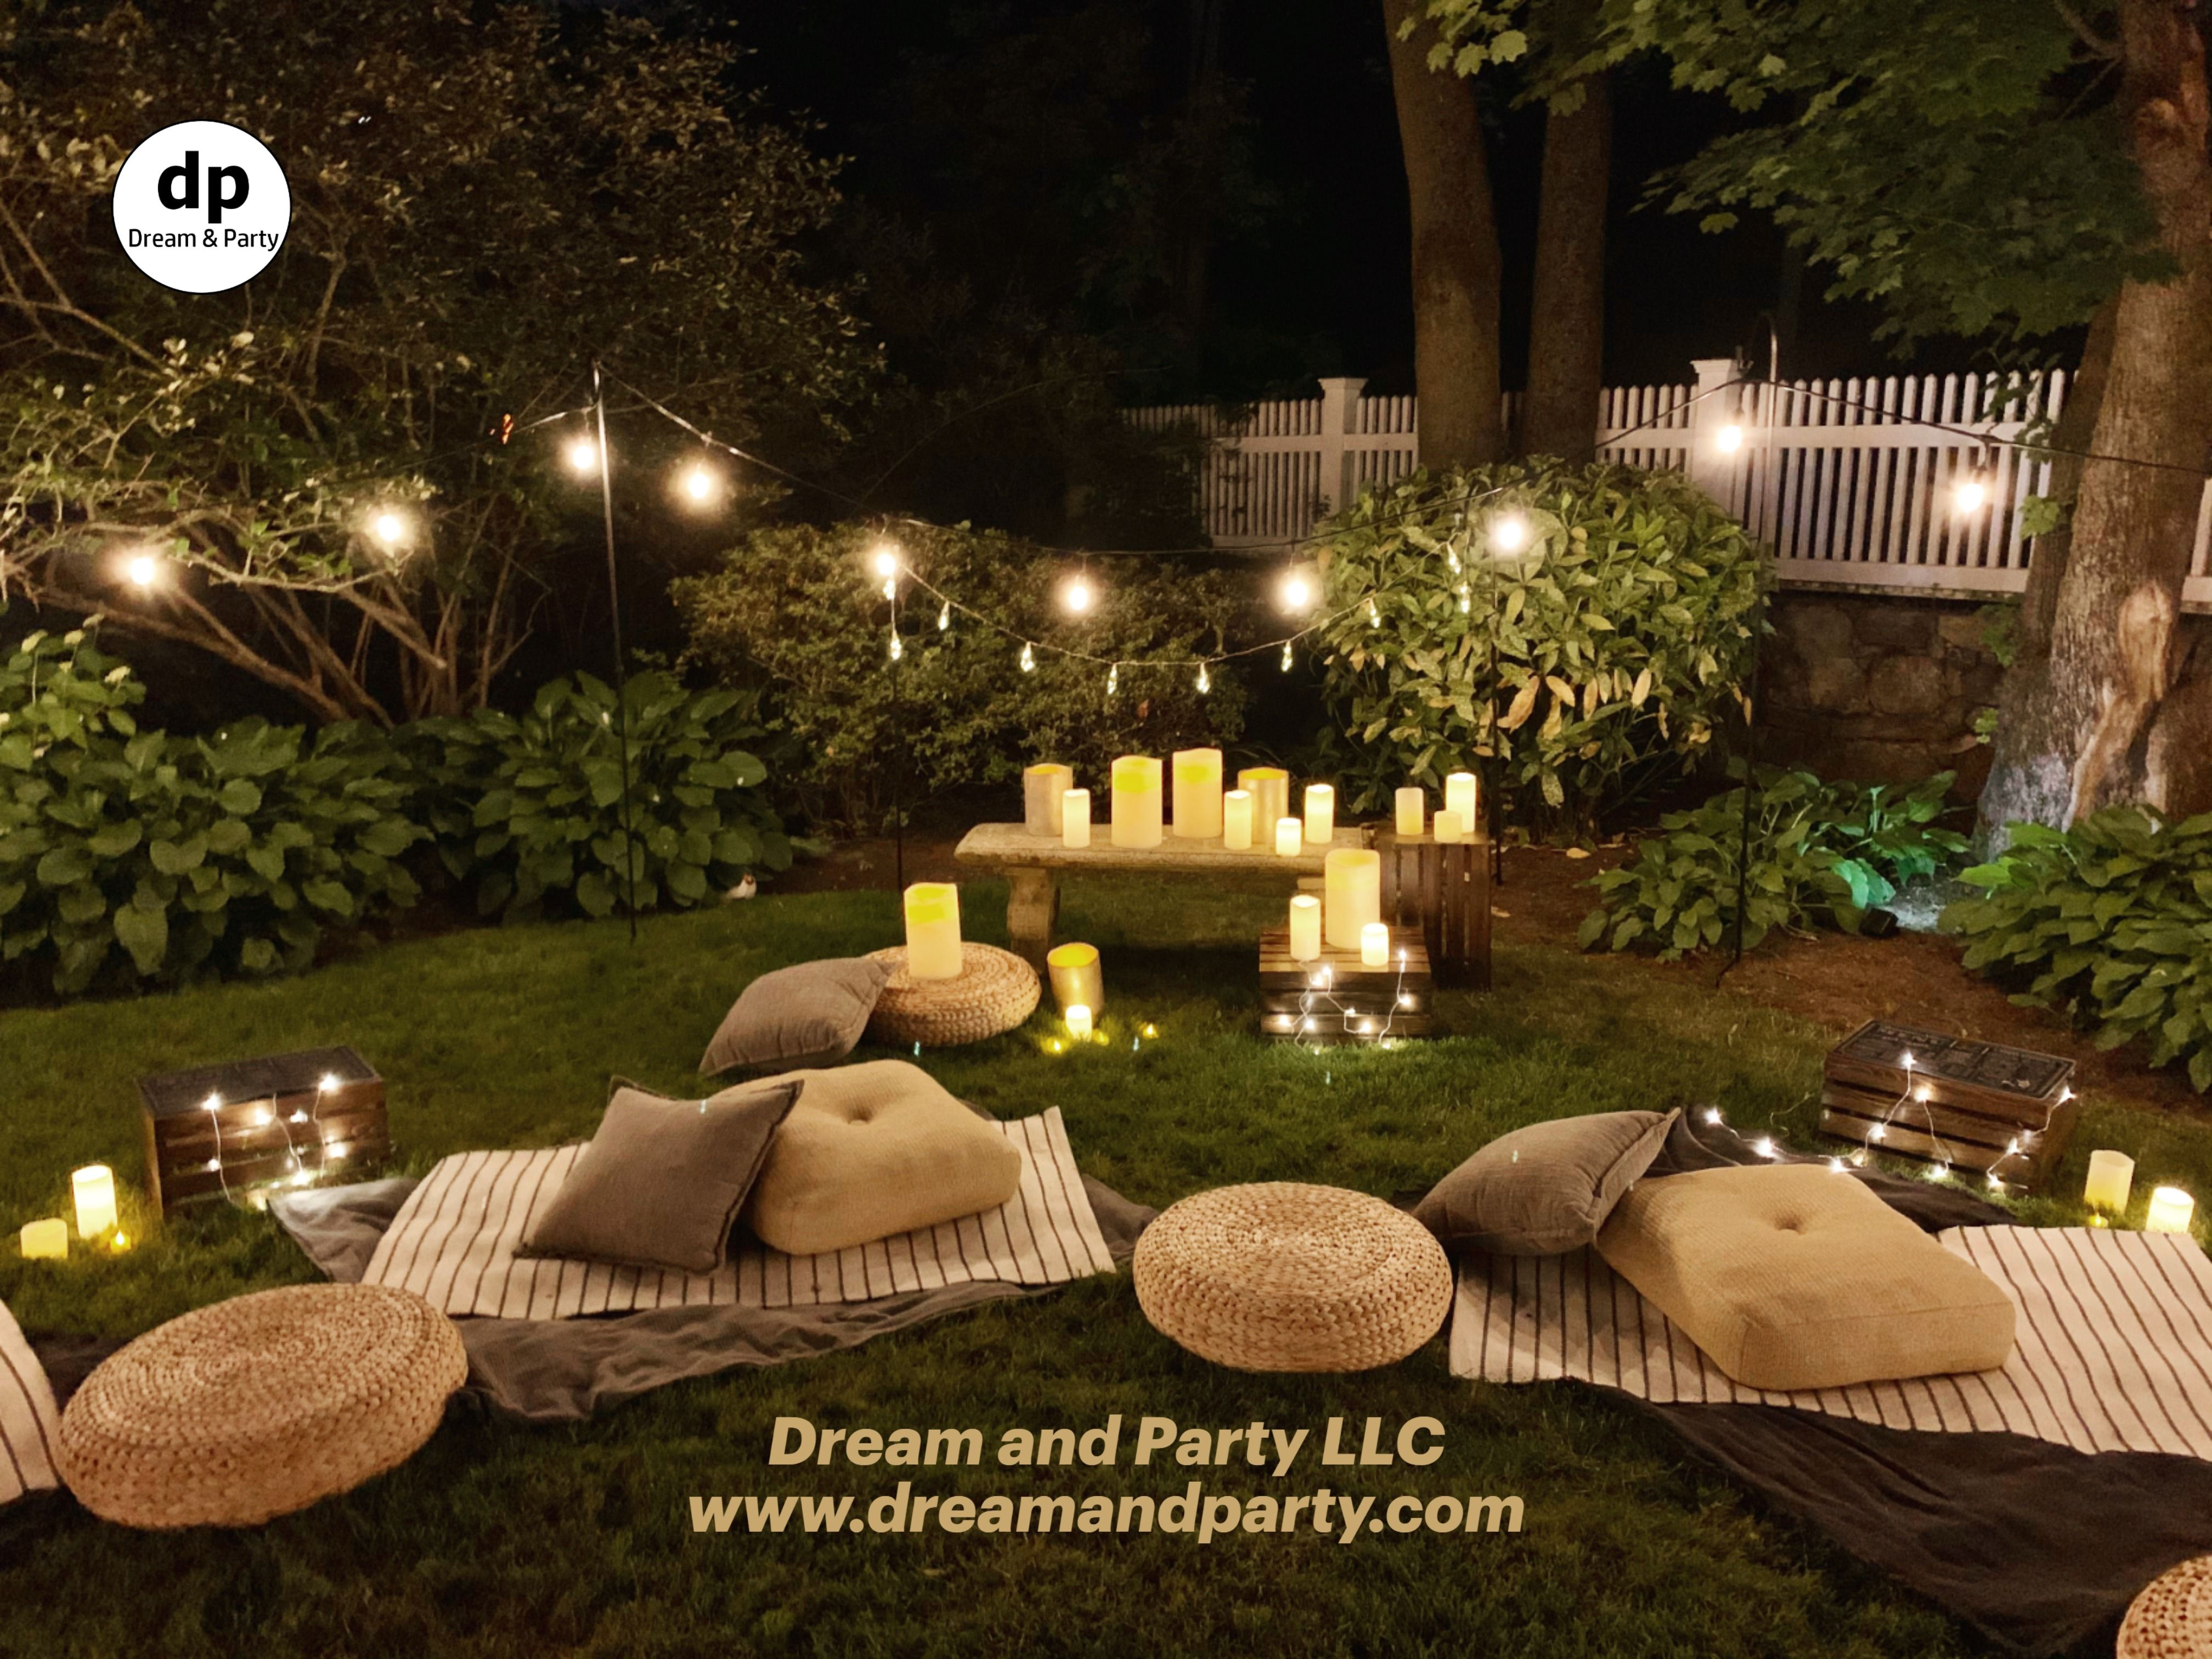 Bistro Lighting Candles Decor Ideas Backyard Party Party At Home Backyard Birthday Parties Movie Night Birthday Party Outdoor Party Decorations